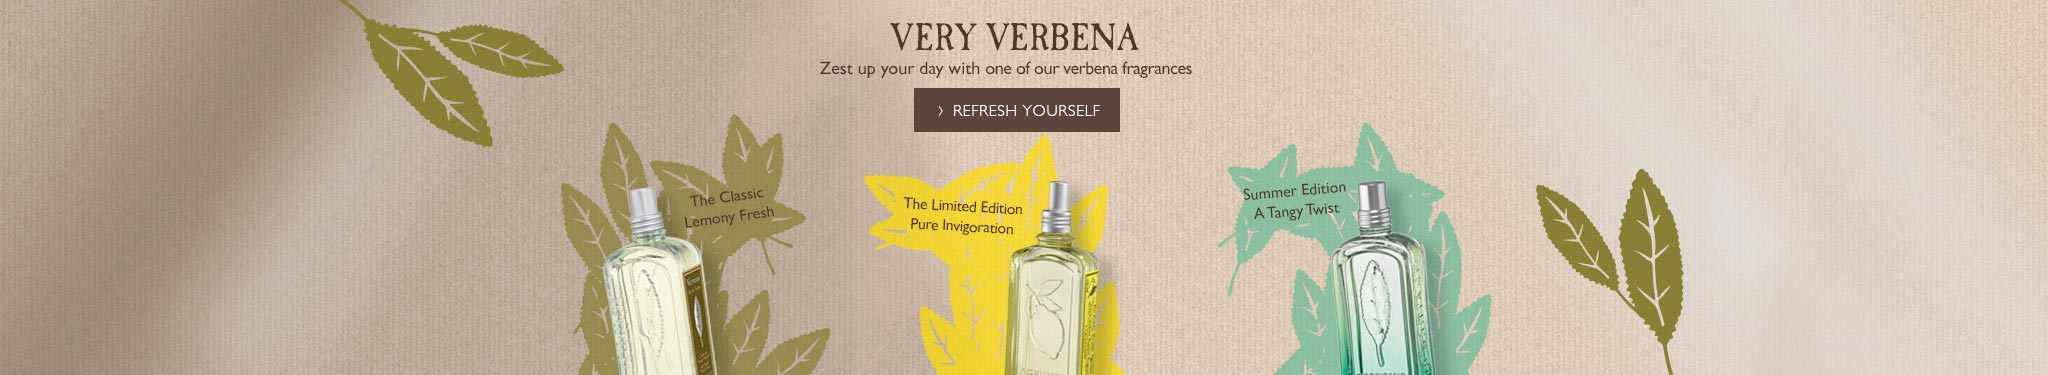 Very Verbena. Zest up your day with one of our verbena fragrances.